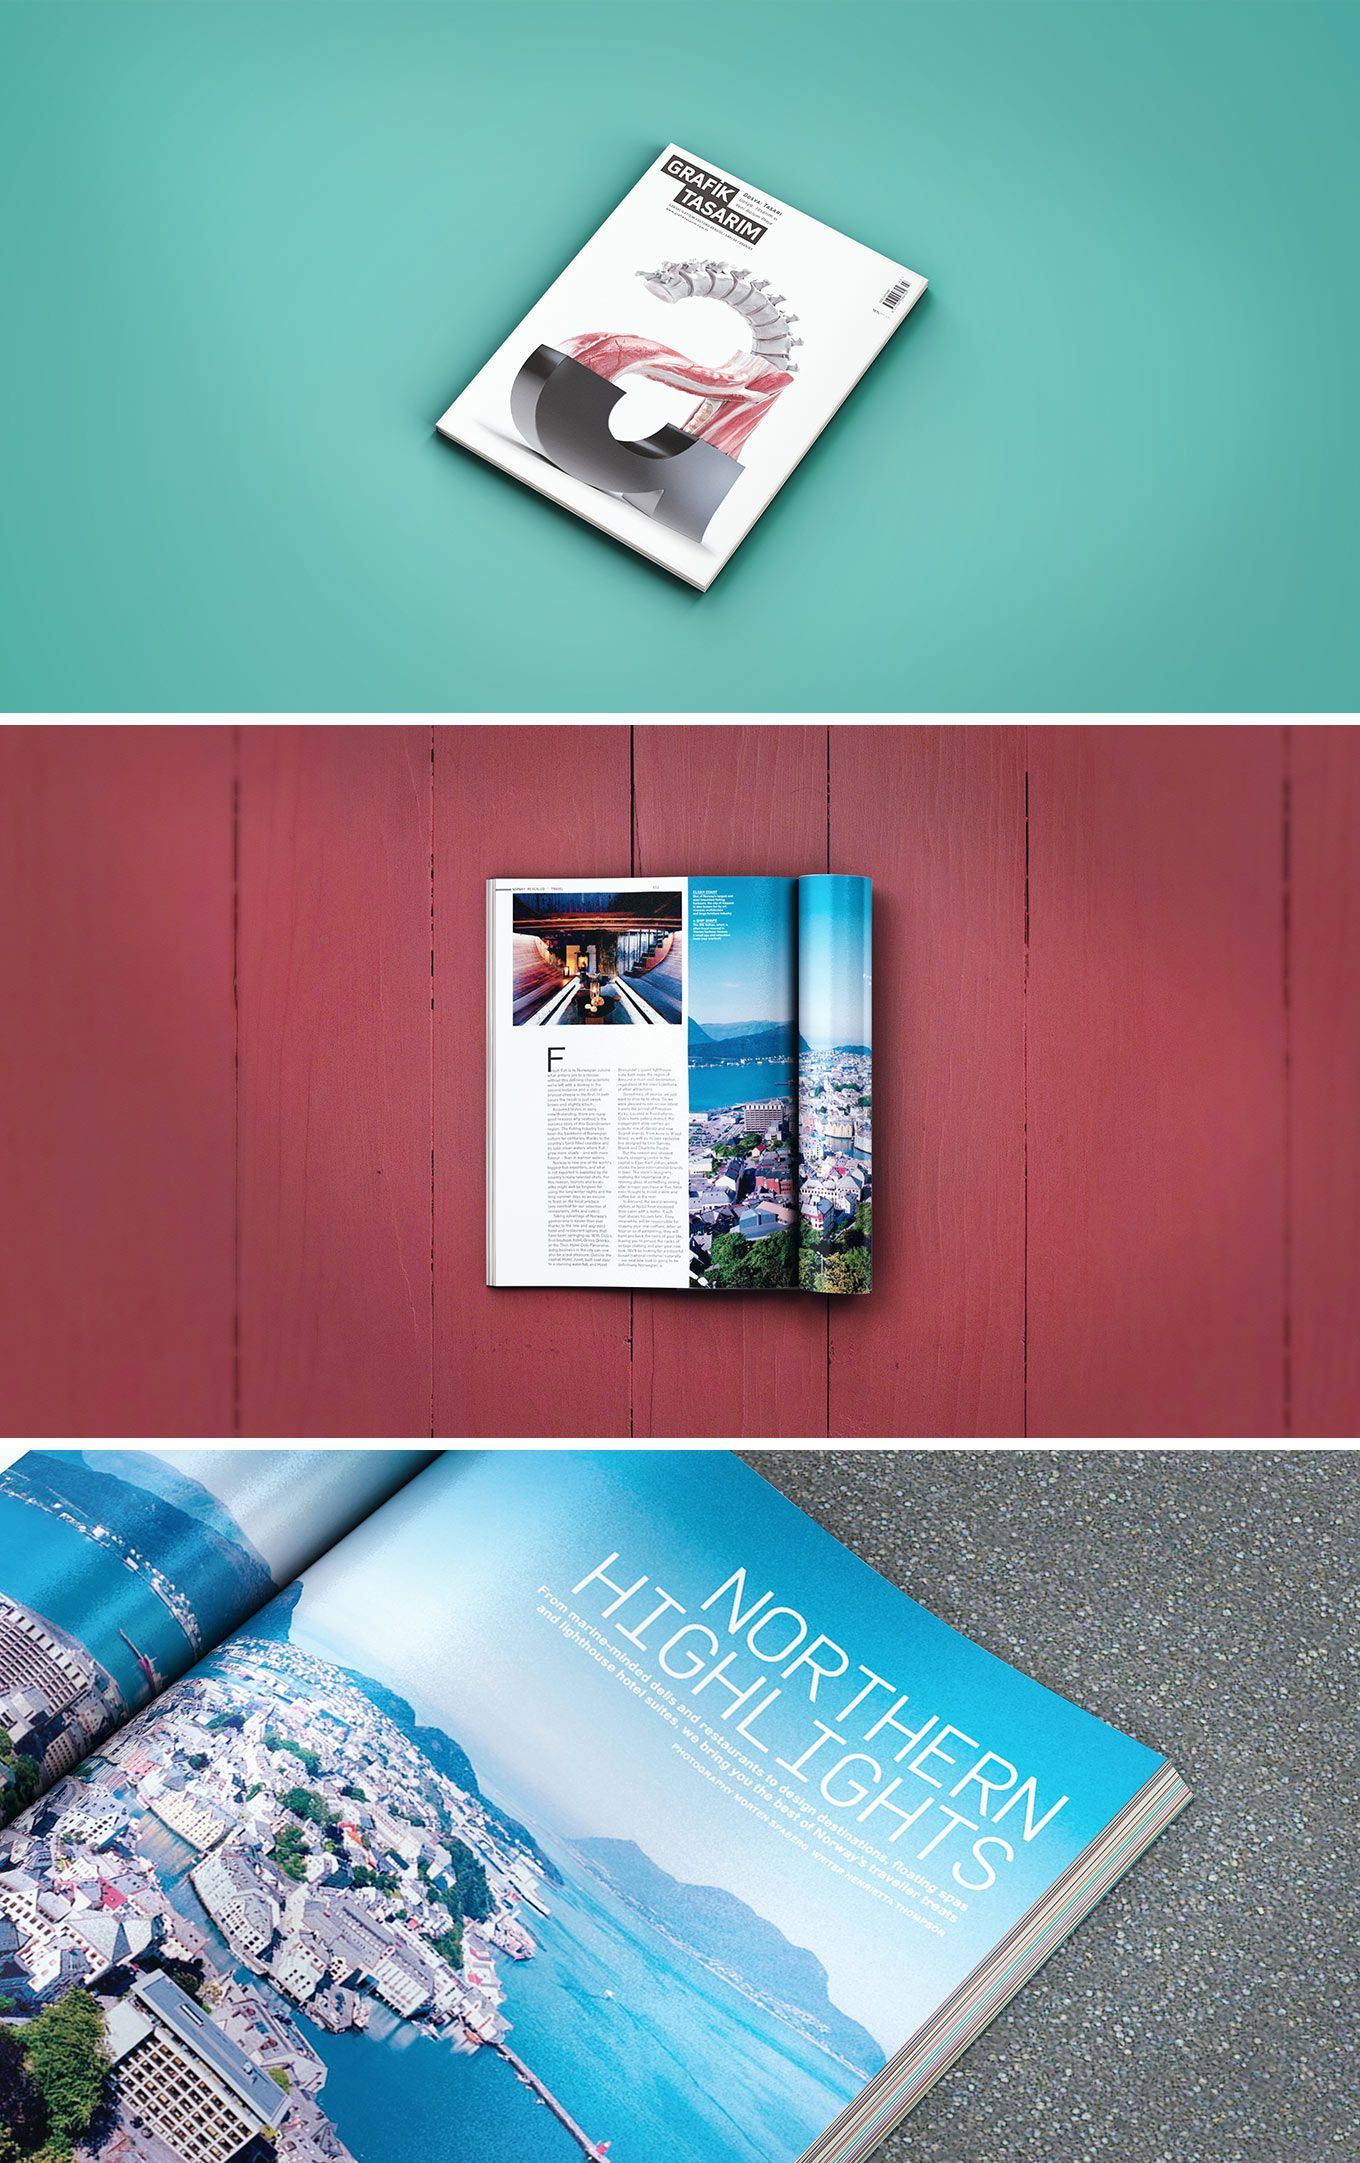 Download Mockup Magazine Psd Gratuit Yellowimages